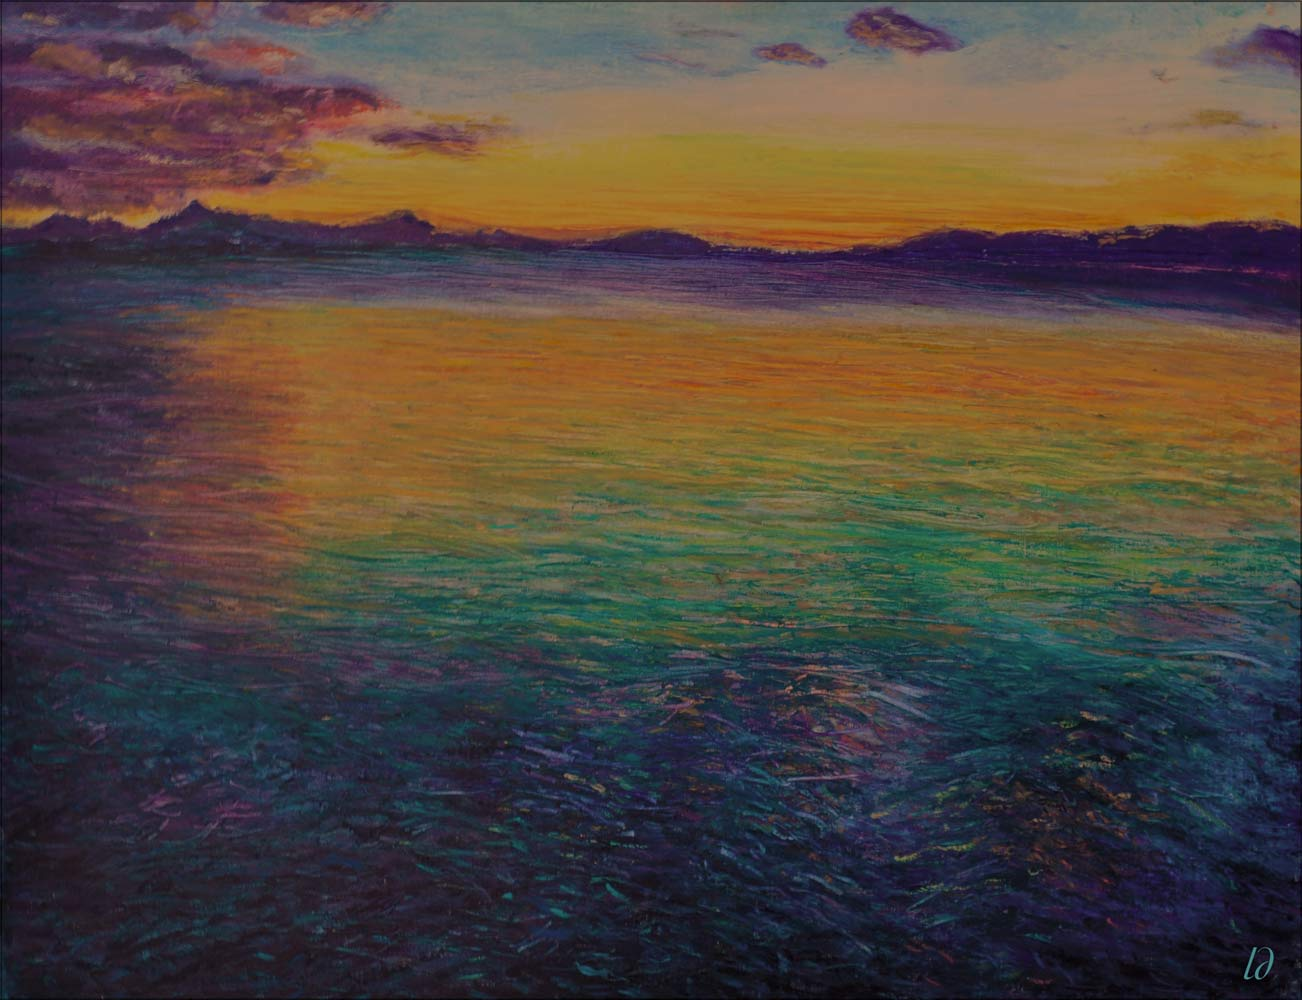 Sunset over Lake Geneva. 50x65, oil pastel on paper, 2015